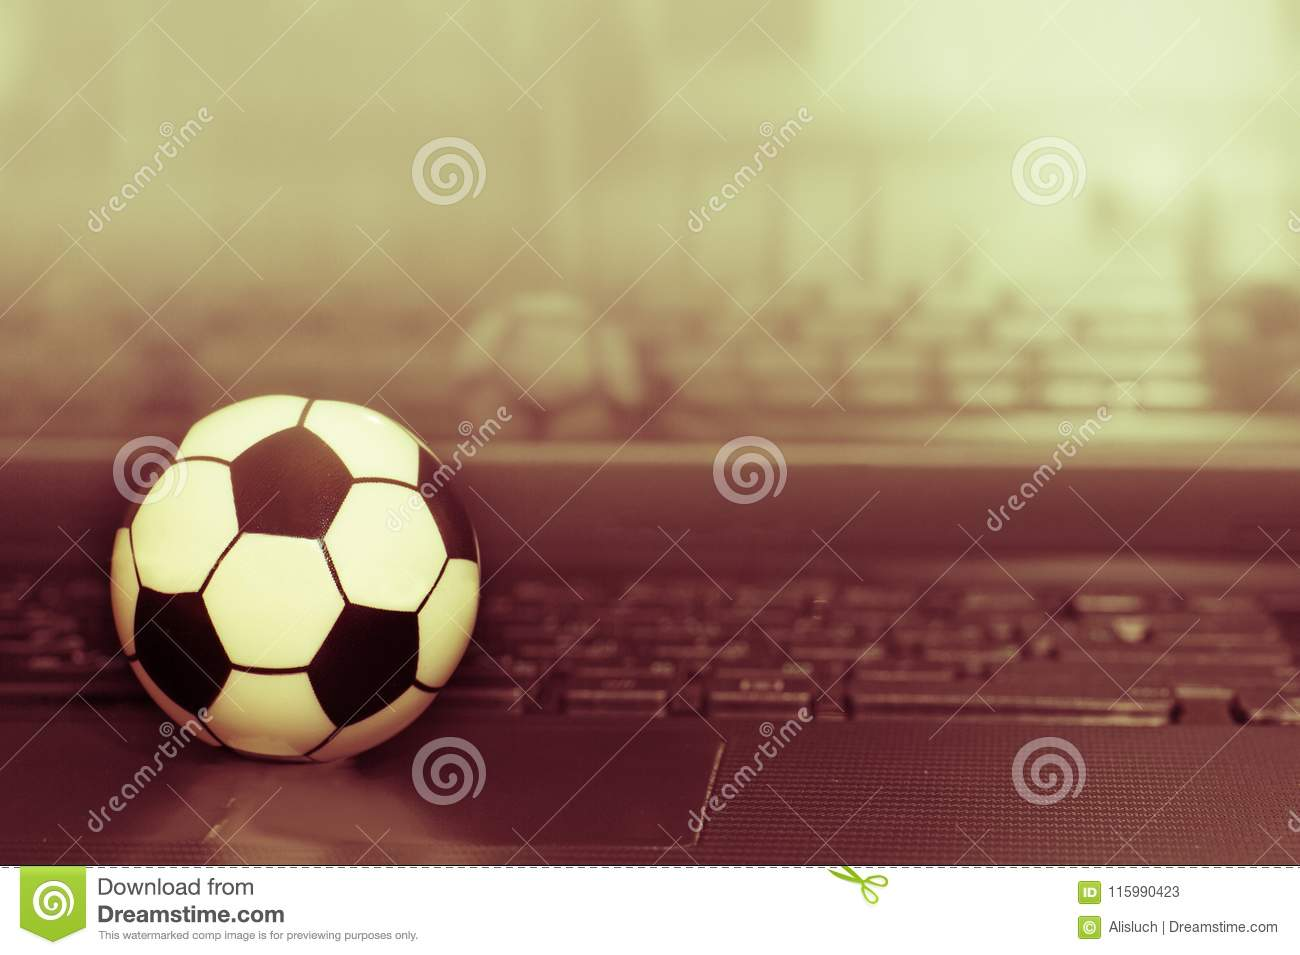 Souvenir Soccer Ball On The Laptop Keyboard The Concept Of A